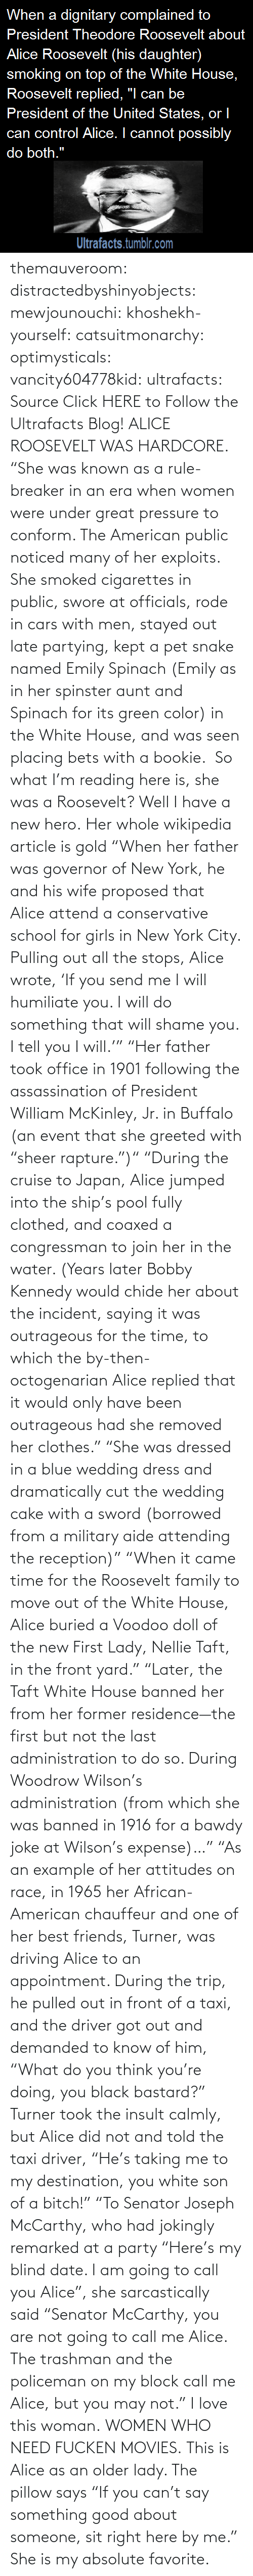 "buried: themauveroom: distractedbyshinyobjects:  mewjounouchi:  khoshekh-yourself:  catsuitmonarchy:  optimysticals:  vancity604778kid:  ultrafacts:     Source Click HERE to Follow the Ultrafacts Blog!     ALICE ROOSEVELT WAS HARDCORE. ""She was known as a rule-breaker in an era when women were under great pressure to conform. The American public noticed many of her exploits. She smoked cigarettes in public, swore at officials, rode in cars with men, stayed out late partying, kept a pet snake named Emily Spinach (Emily as in her spinster aunt and Spinach for its green color) in the White House, and was seen placing bets with a bookie.    So what I'm reading here is, she was a Roosevelt?  Well I have a new hero.  Her whole wikipedia article is gold ""When her father was governor of New York, he and his wife proposed that Alice attend a conservative school for girls in New York City. Pulling out all the stops, Alice wrote, 'If you send me I will humiliate you. I will do something that will shame you. I tell you I will.'"" ""Her father took office in 1901 following the assassination of President William McKinley, Jr. in Buffalo (an event that she greeted with ""sheer rapture."")"" ""During the cruise to Japan, Alice jumped into the ship's pool fully clothed, and coaxed a congressman to join her in the water. (Years later Bobby Kennedy would chide her about the incident, saying it was outrageous for the time, to which the by-then-octogenarian Alice replied that it would only have been outrageous had she removed her clothes."" ""She was dressed in a blue wedding dress and dramatically cut the wedding cake with a sword (borrowed from a military aide attending the reception)"" ""When it came time for the Roosevelt family to move out of the White House, Alice buried a Voodoo doll of the new First Lady, Nellie Taft, in the front yard."" ""Later, the Taft White House banned her from her former residence—the first but not the last administration to do so. During Woodrow Wilson's administration (from which she was banned in 1916 for a bawdy joke at Wilson's expense)…"" ""As an example of her attitudes on race, in 1965 her African-American chauffeur and one of her best friends, Turner, was driving Alice to an appointment. During the trip, he pulled out in front of a taxi, and the driver got out and demanded to know of him, ""What do you think you're doing, you black bastard?"" Turner took the insult calmly, but Alice did not and told the taxi driver, ""He's taking me to my destination, you white son of a bitch!"" ""To Senator Joseph McCarthy, who had jokingly remarked at a party ""Here's my blind date. I am going to call you Alice"", she sarcastically said ""Senator McCarthy, you are not going to call me Alice. The trashman and the policeman on my block call me Alice, but you may not.""  I love this woman.  WOMEN WHO NEED FUCKEN MOVIES.   This is Alice as an older lady. The pillow says ""If you can't say something good about someone, sit right here by me.""  She is my absolute favorite."